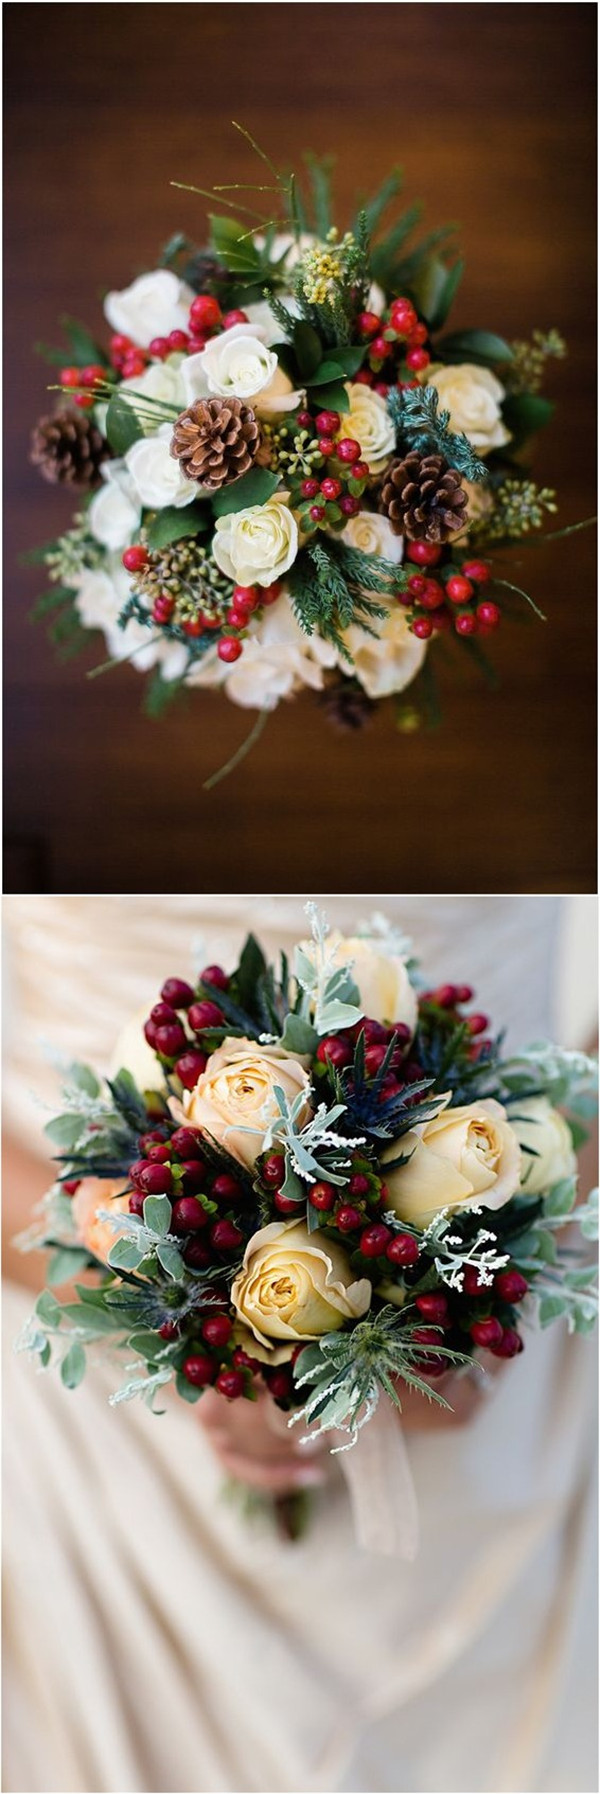 16 Christmas Wedding Ideas You Cant Miss